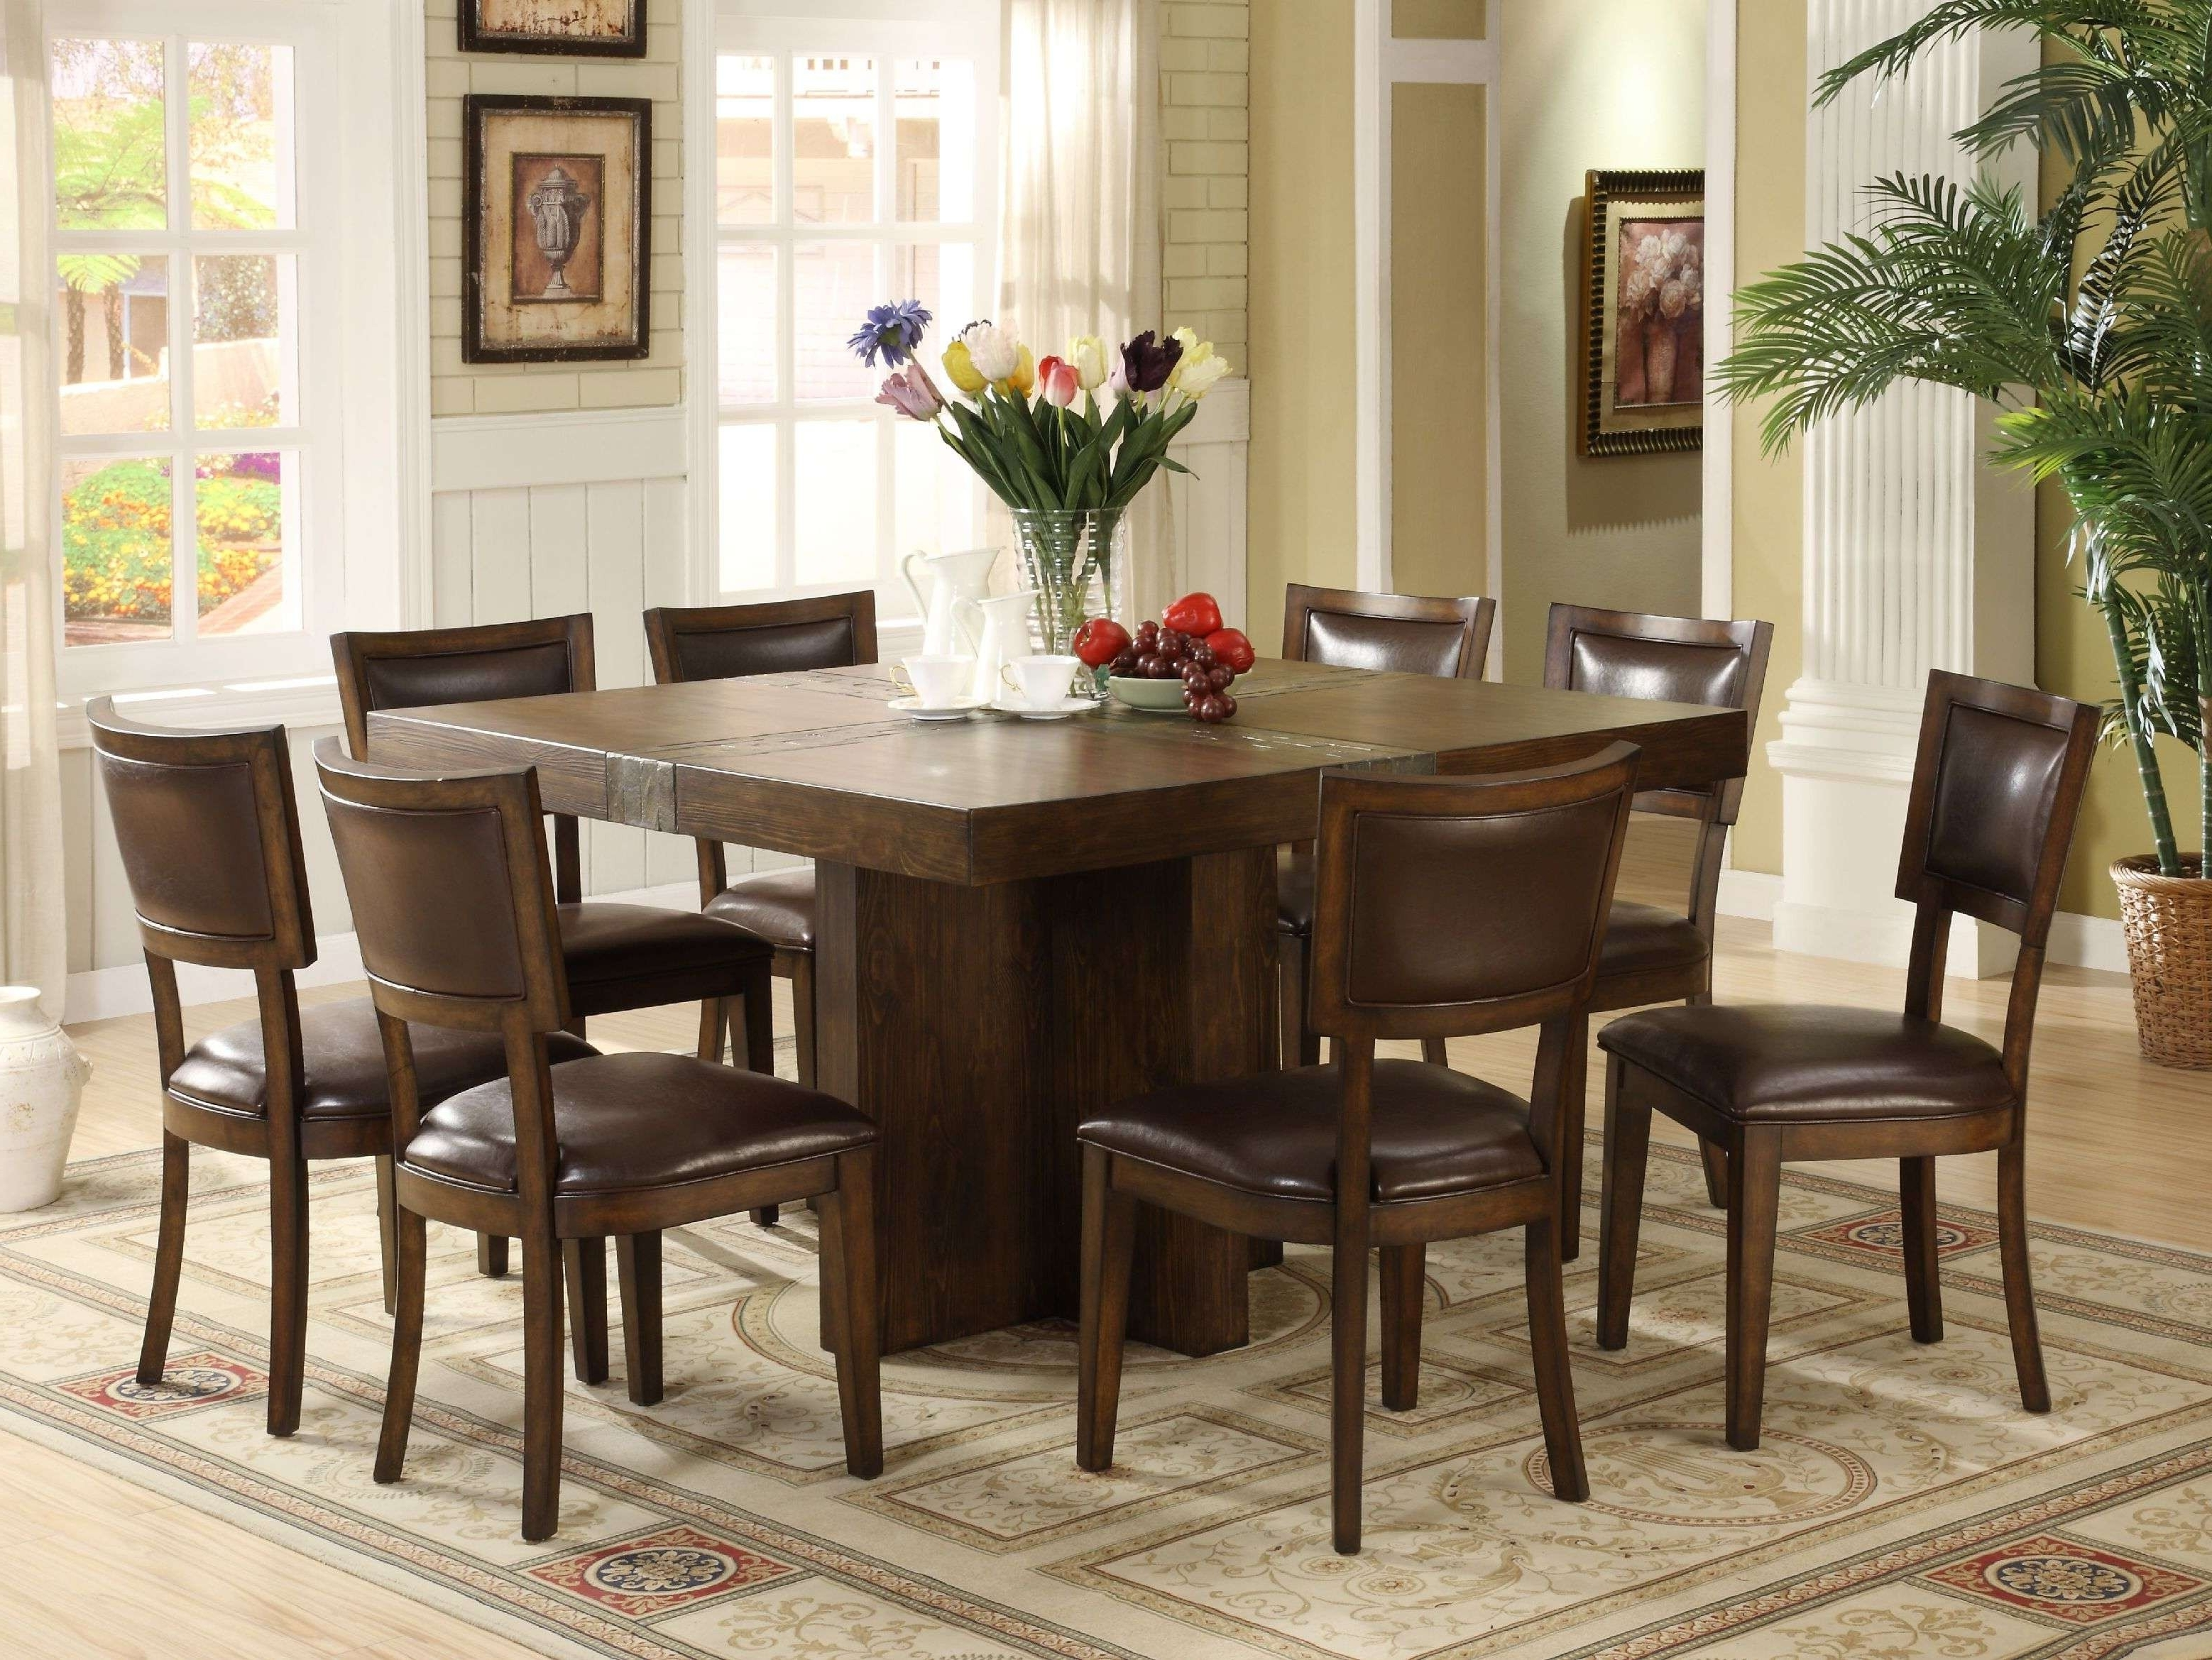 8 Chairs Dining Tables pertaining to Most Current Solid Oak Dining Room Table And 8 Chairs Unique Best 8 Seater Dining